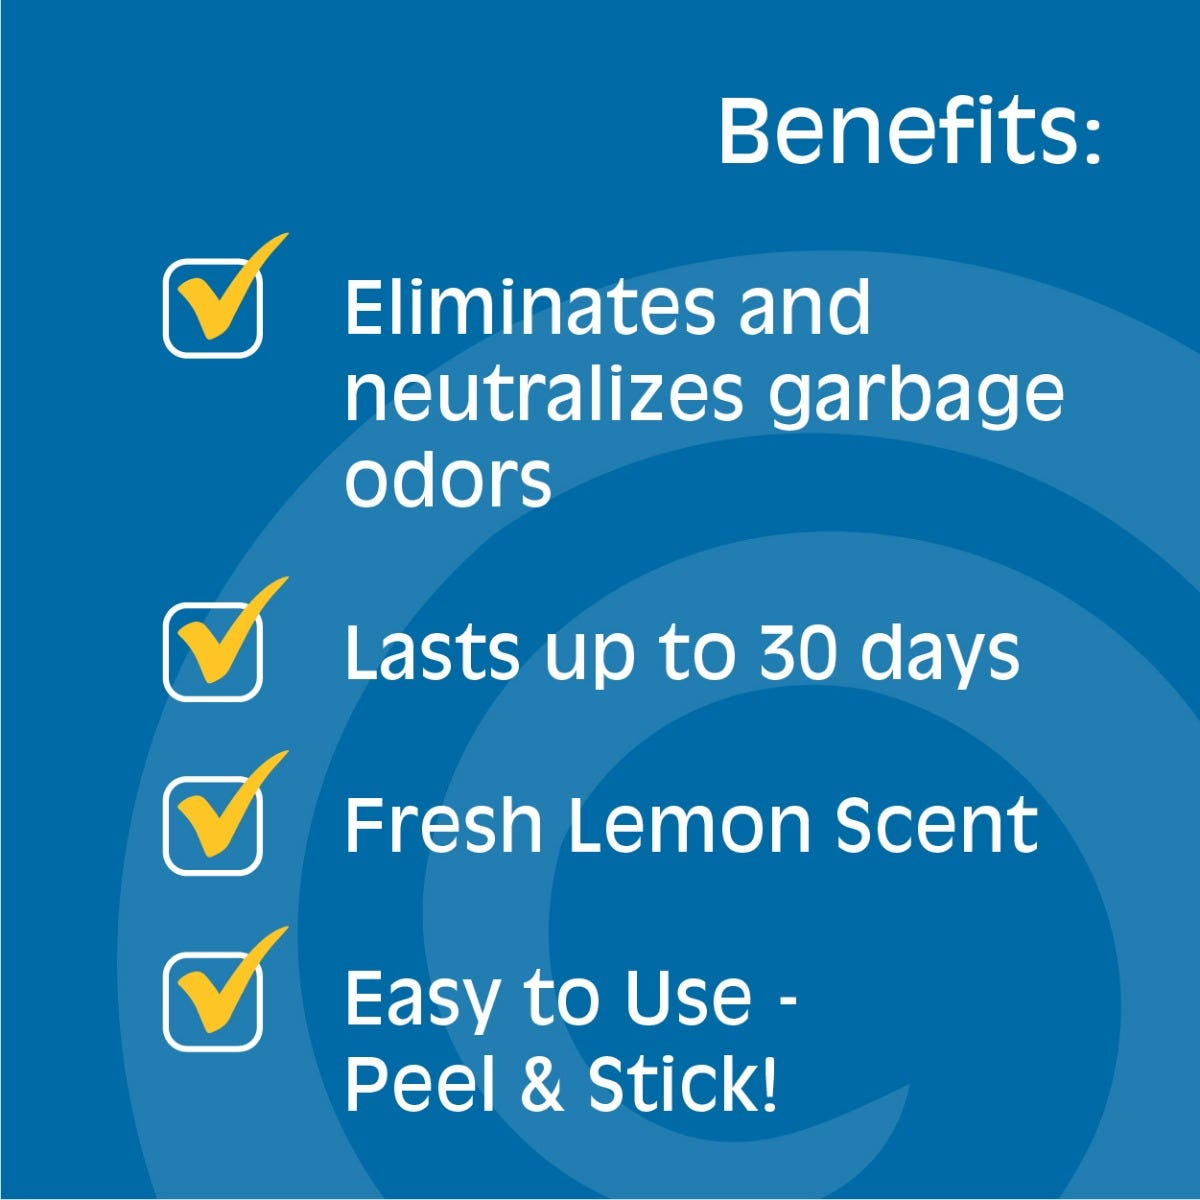 https://googone.com/media/catalog/product/g/a/garbage_odor_eliminator_benefits.jpg